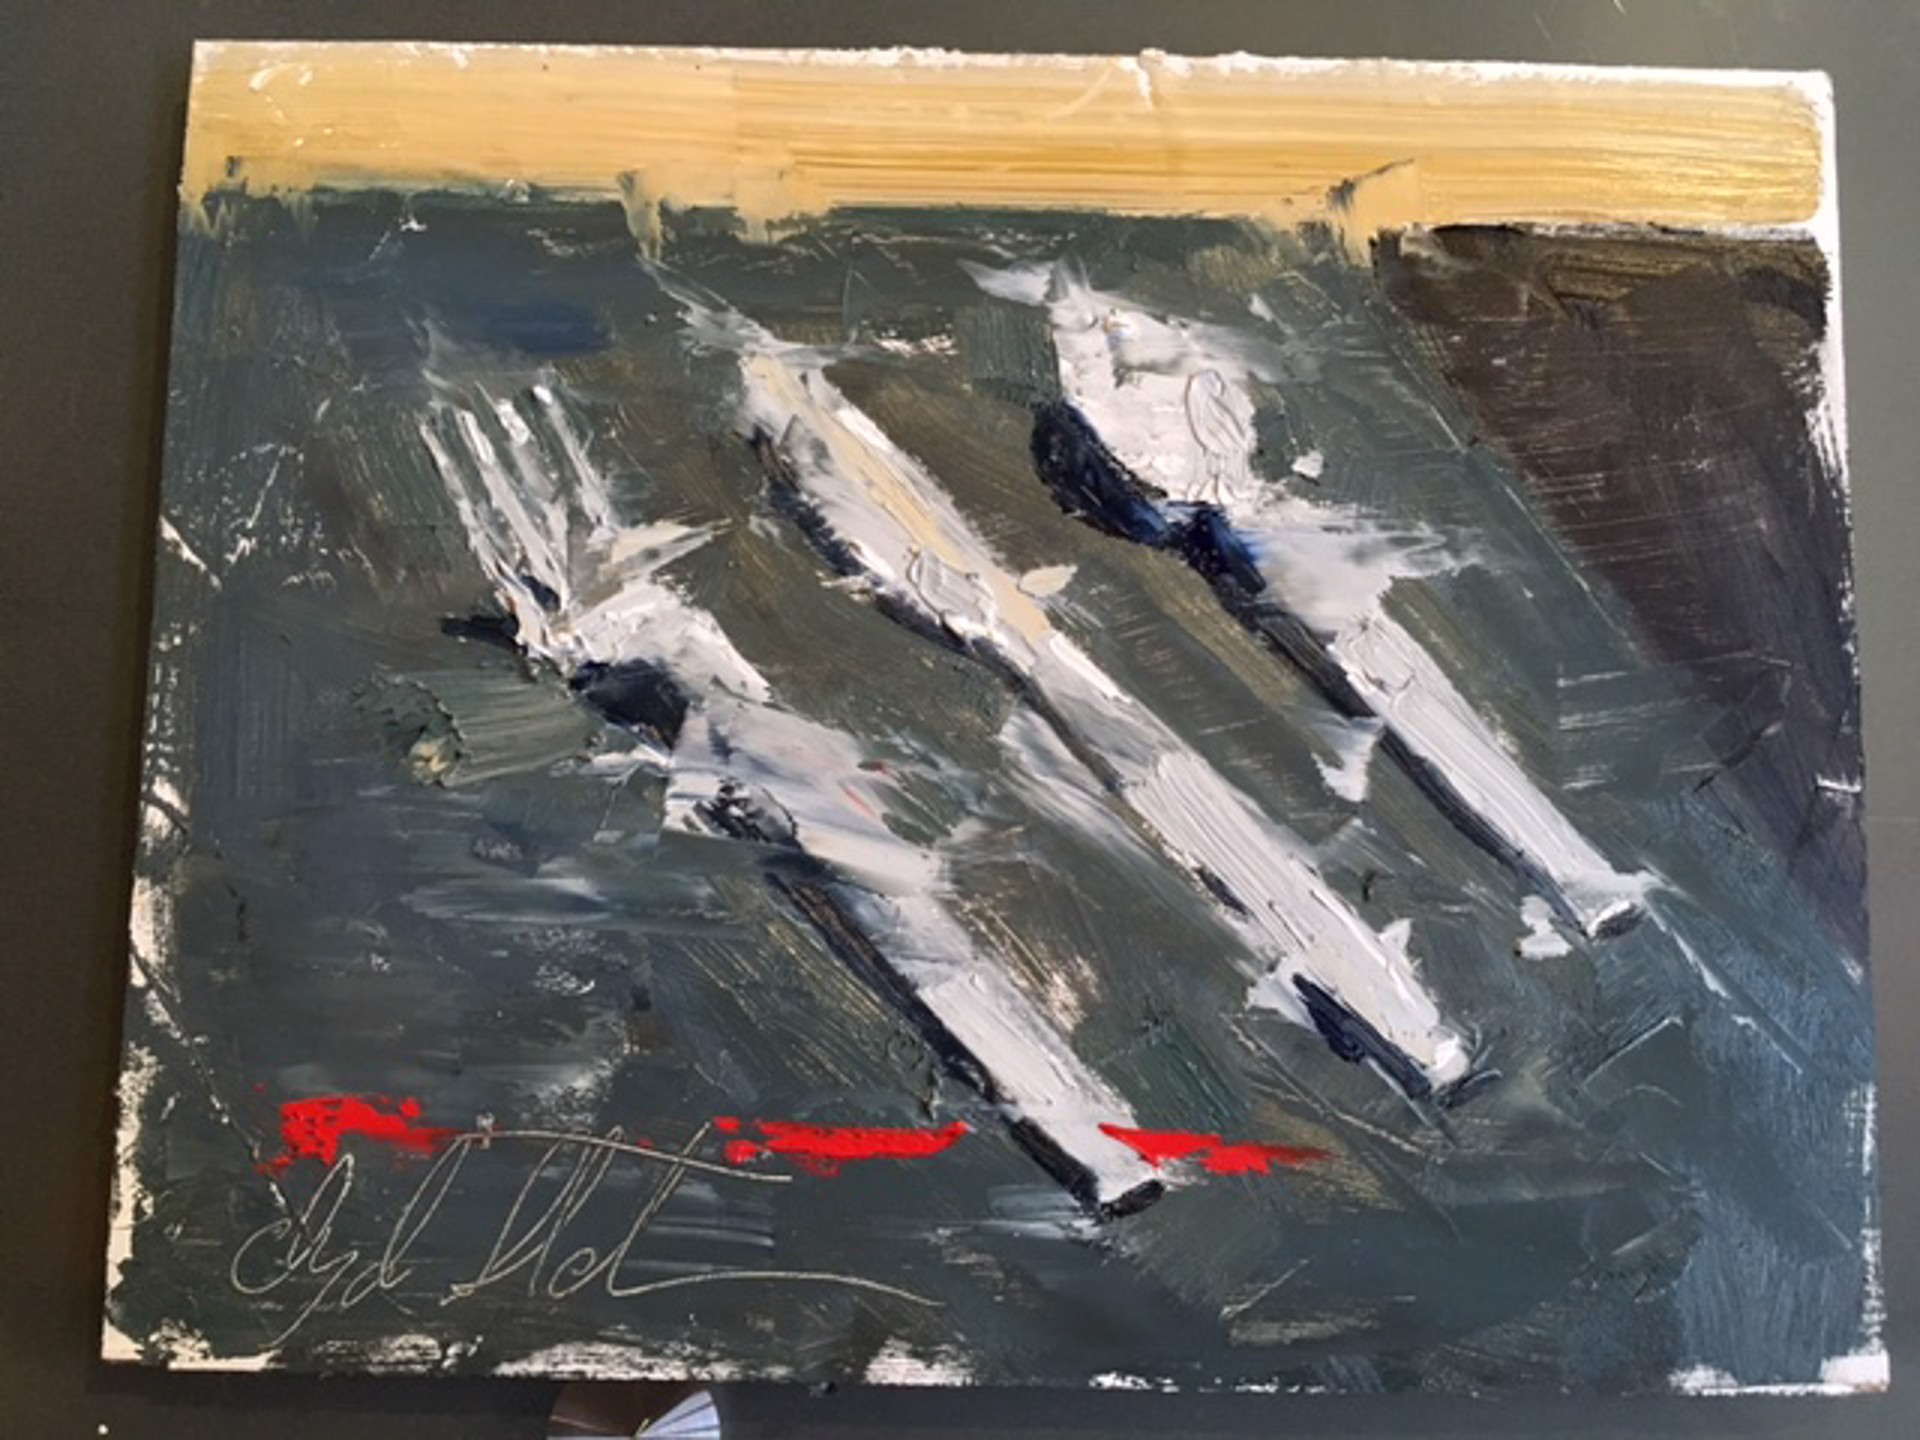 Untitled Silverware Study by Clyde Steadman